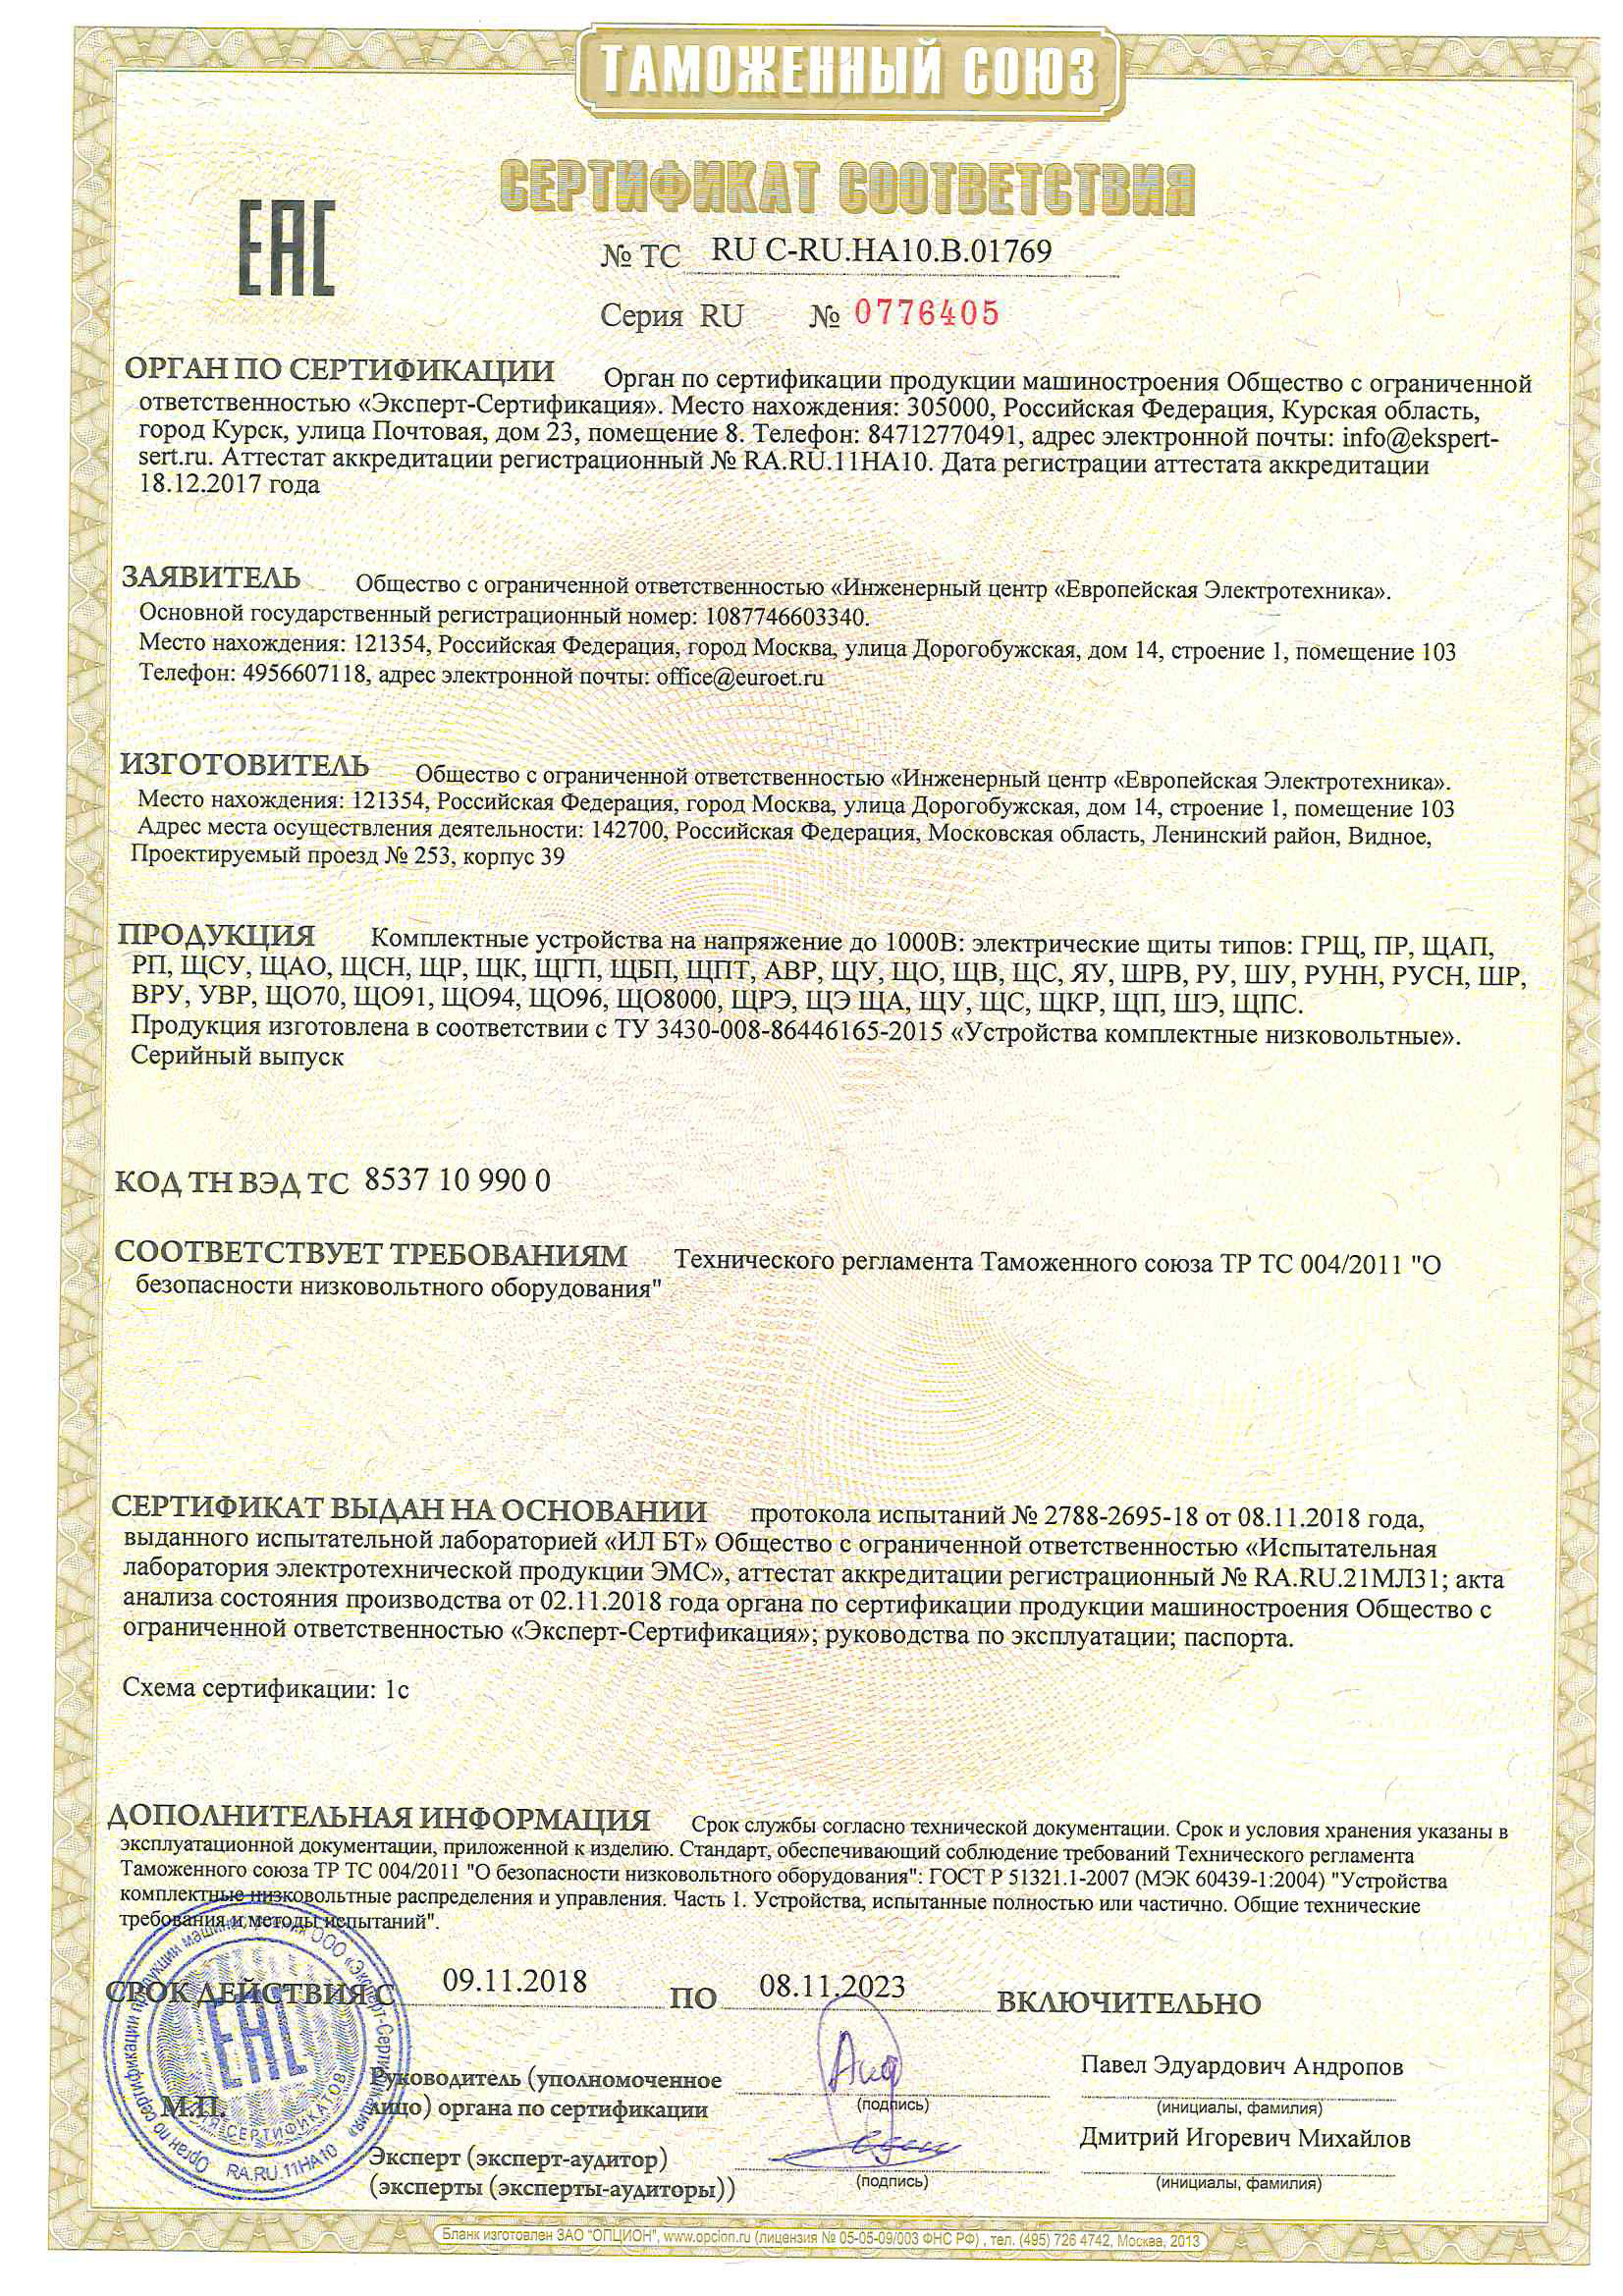 Certificate of conformity to Technical Specifications for Reactive Power Compensation System